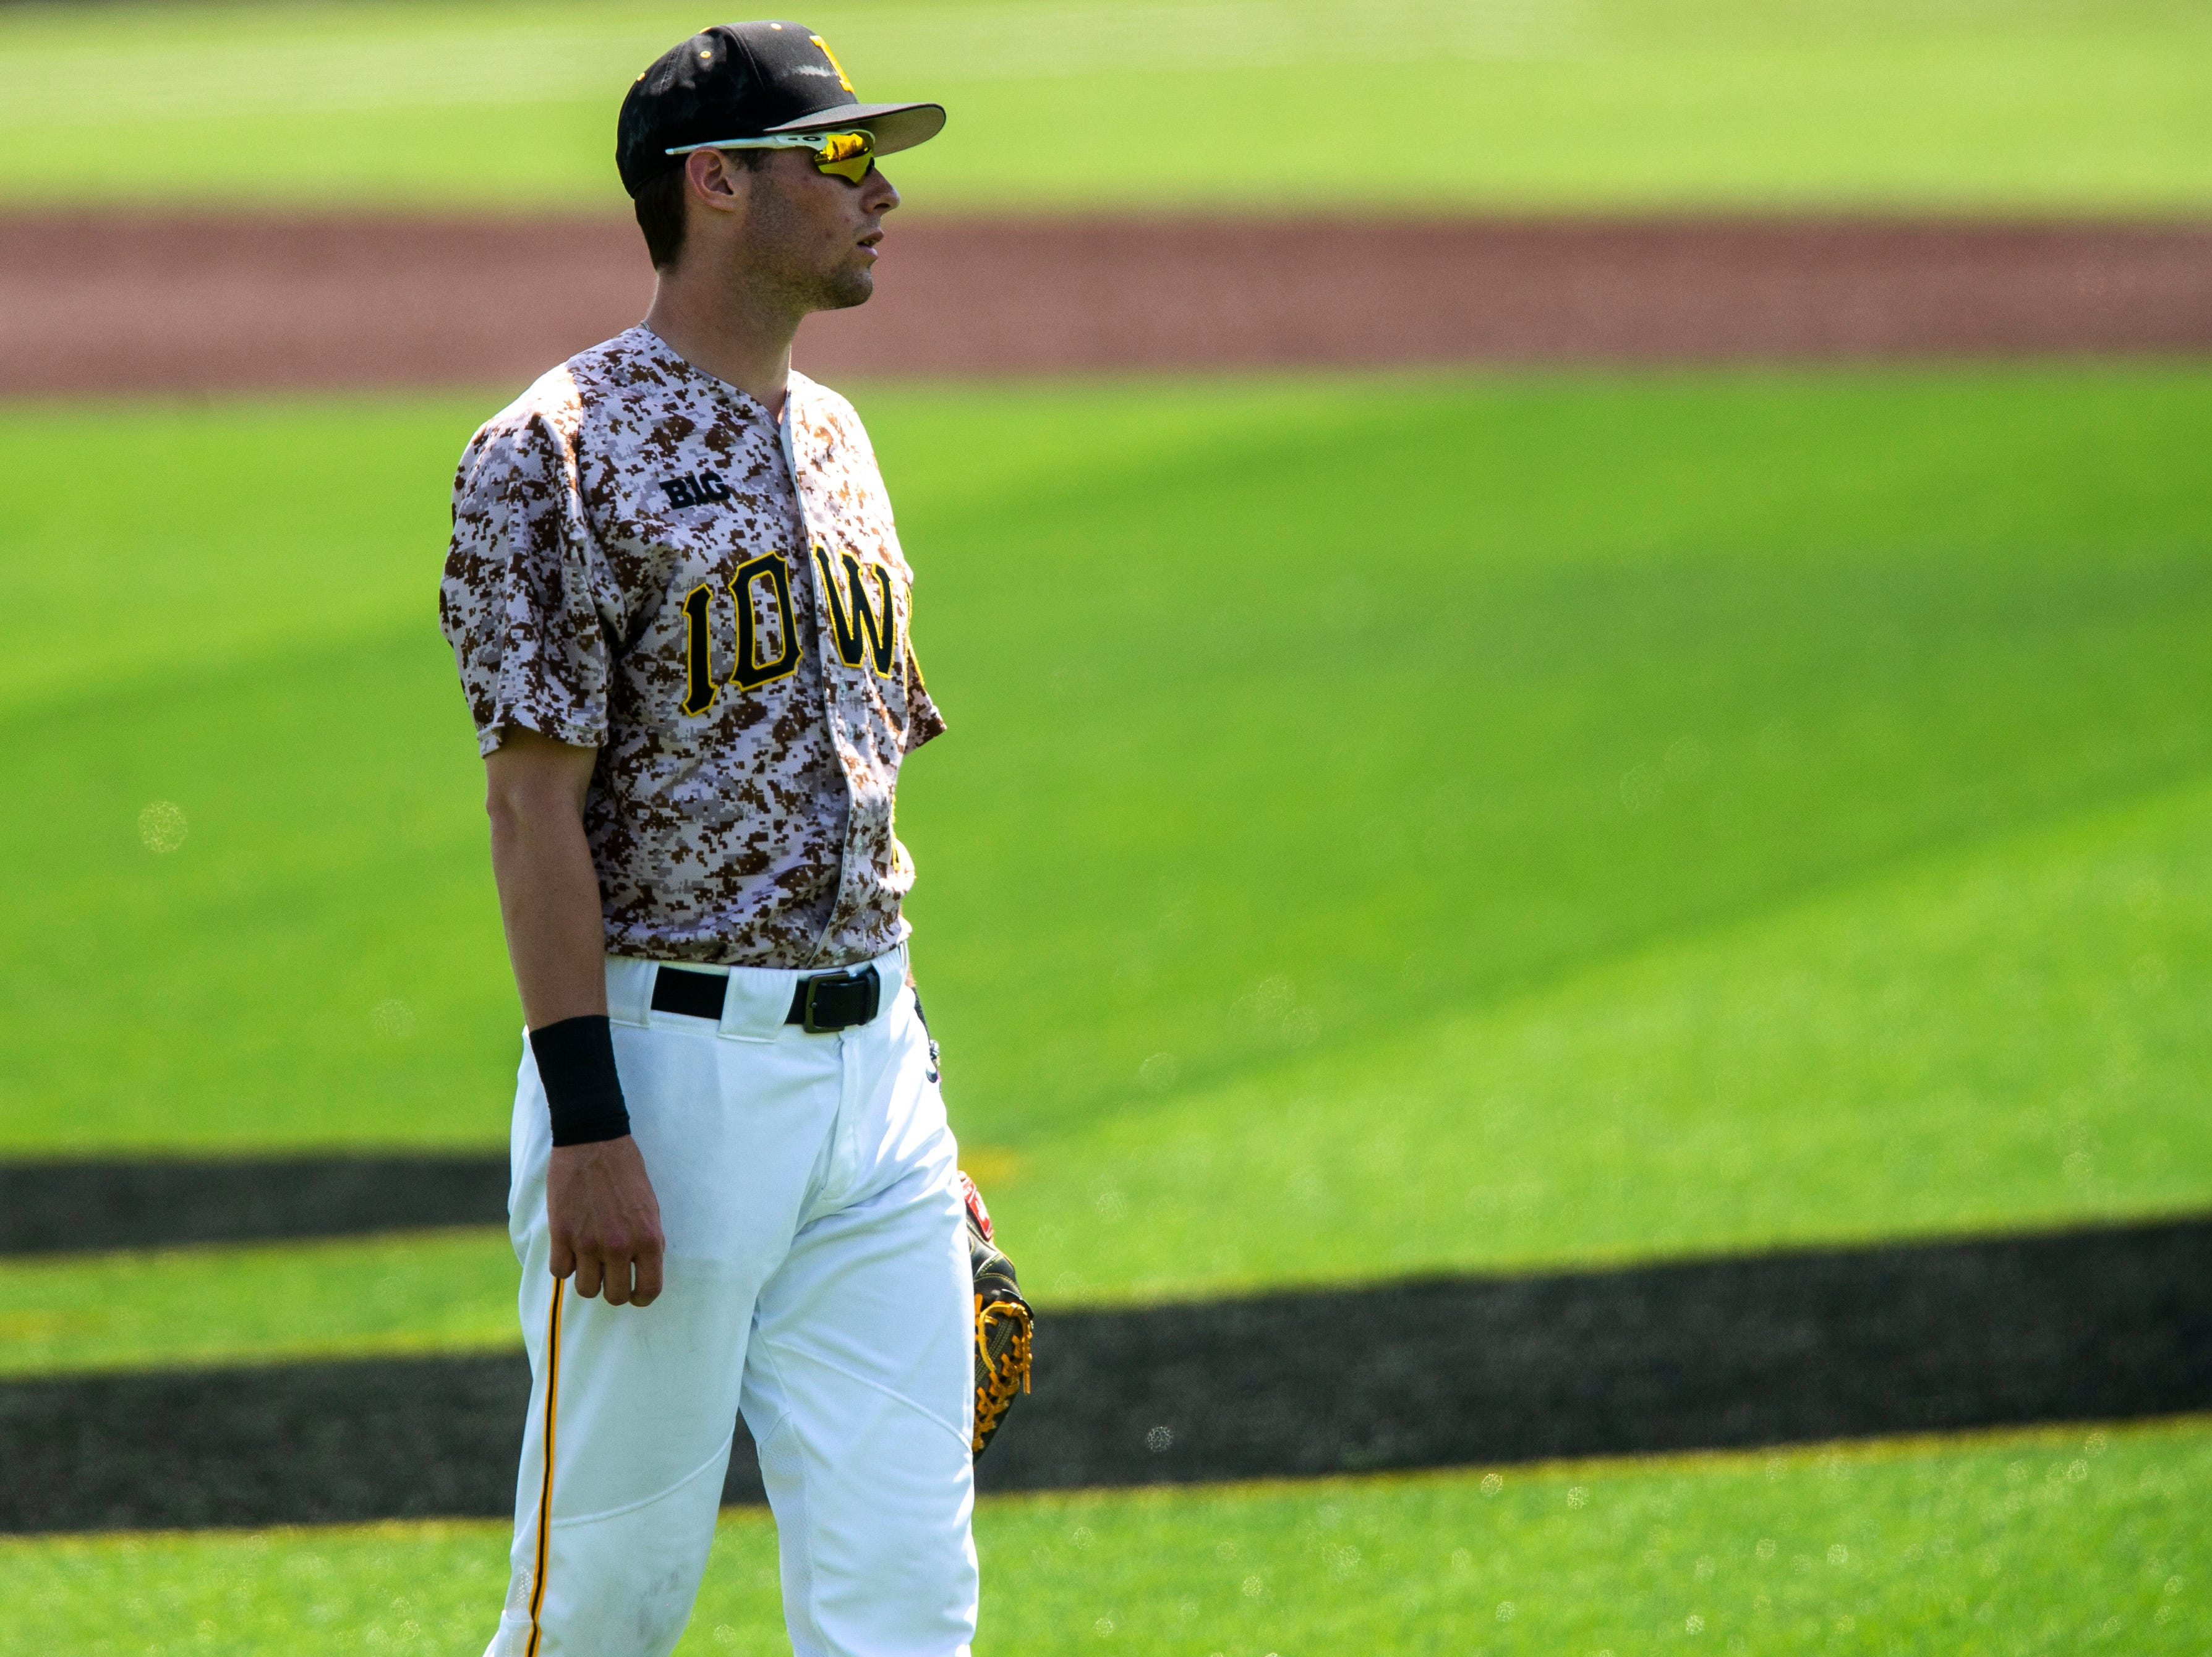 Iowa outfielder Ben Norman (9) stands in center field during a NCAA non conference baseball game, Sunday, May 5, 2019, at Duane Banks Field in Iowa City, Iowa.